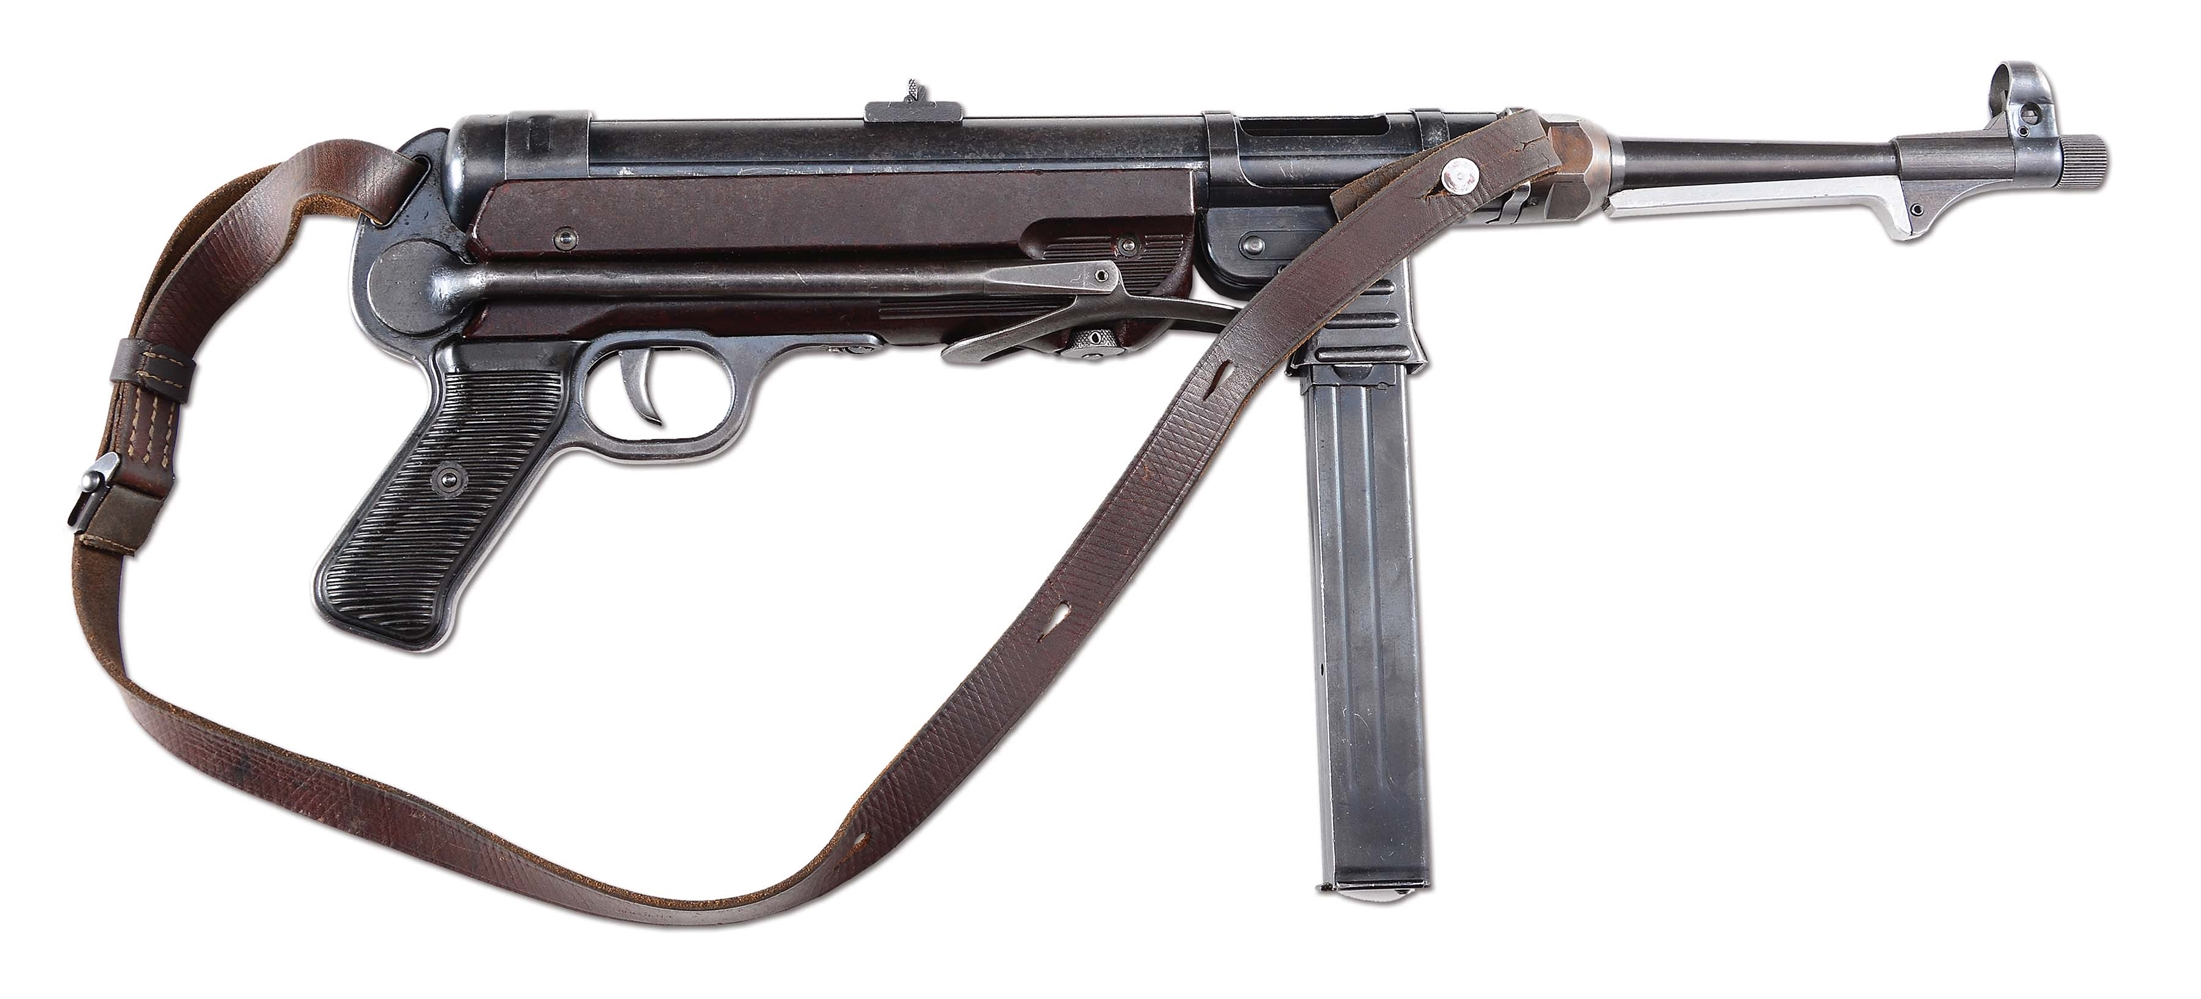 (N) FINE GERMAN WWII MP40 MACHINE GUN (CURIO & RELIC).